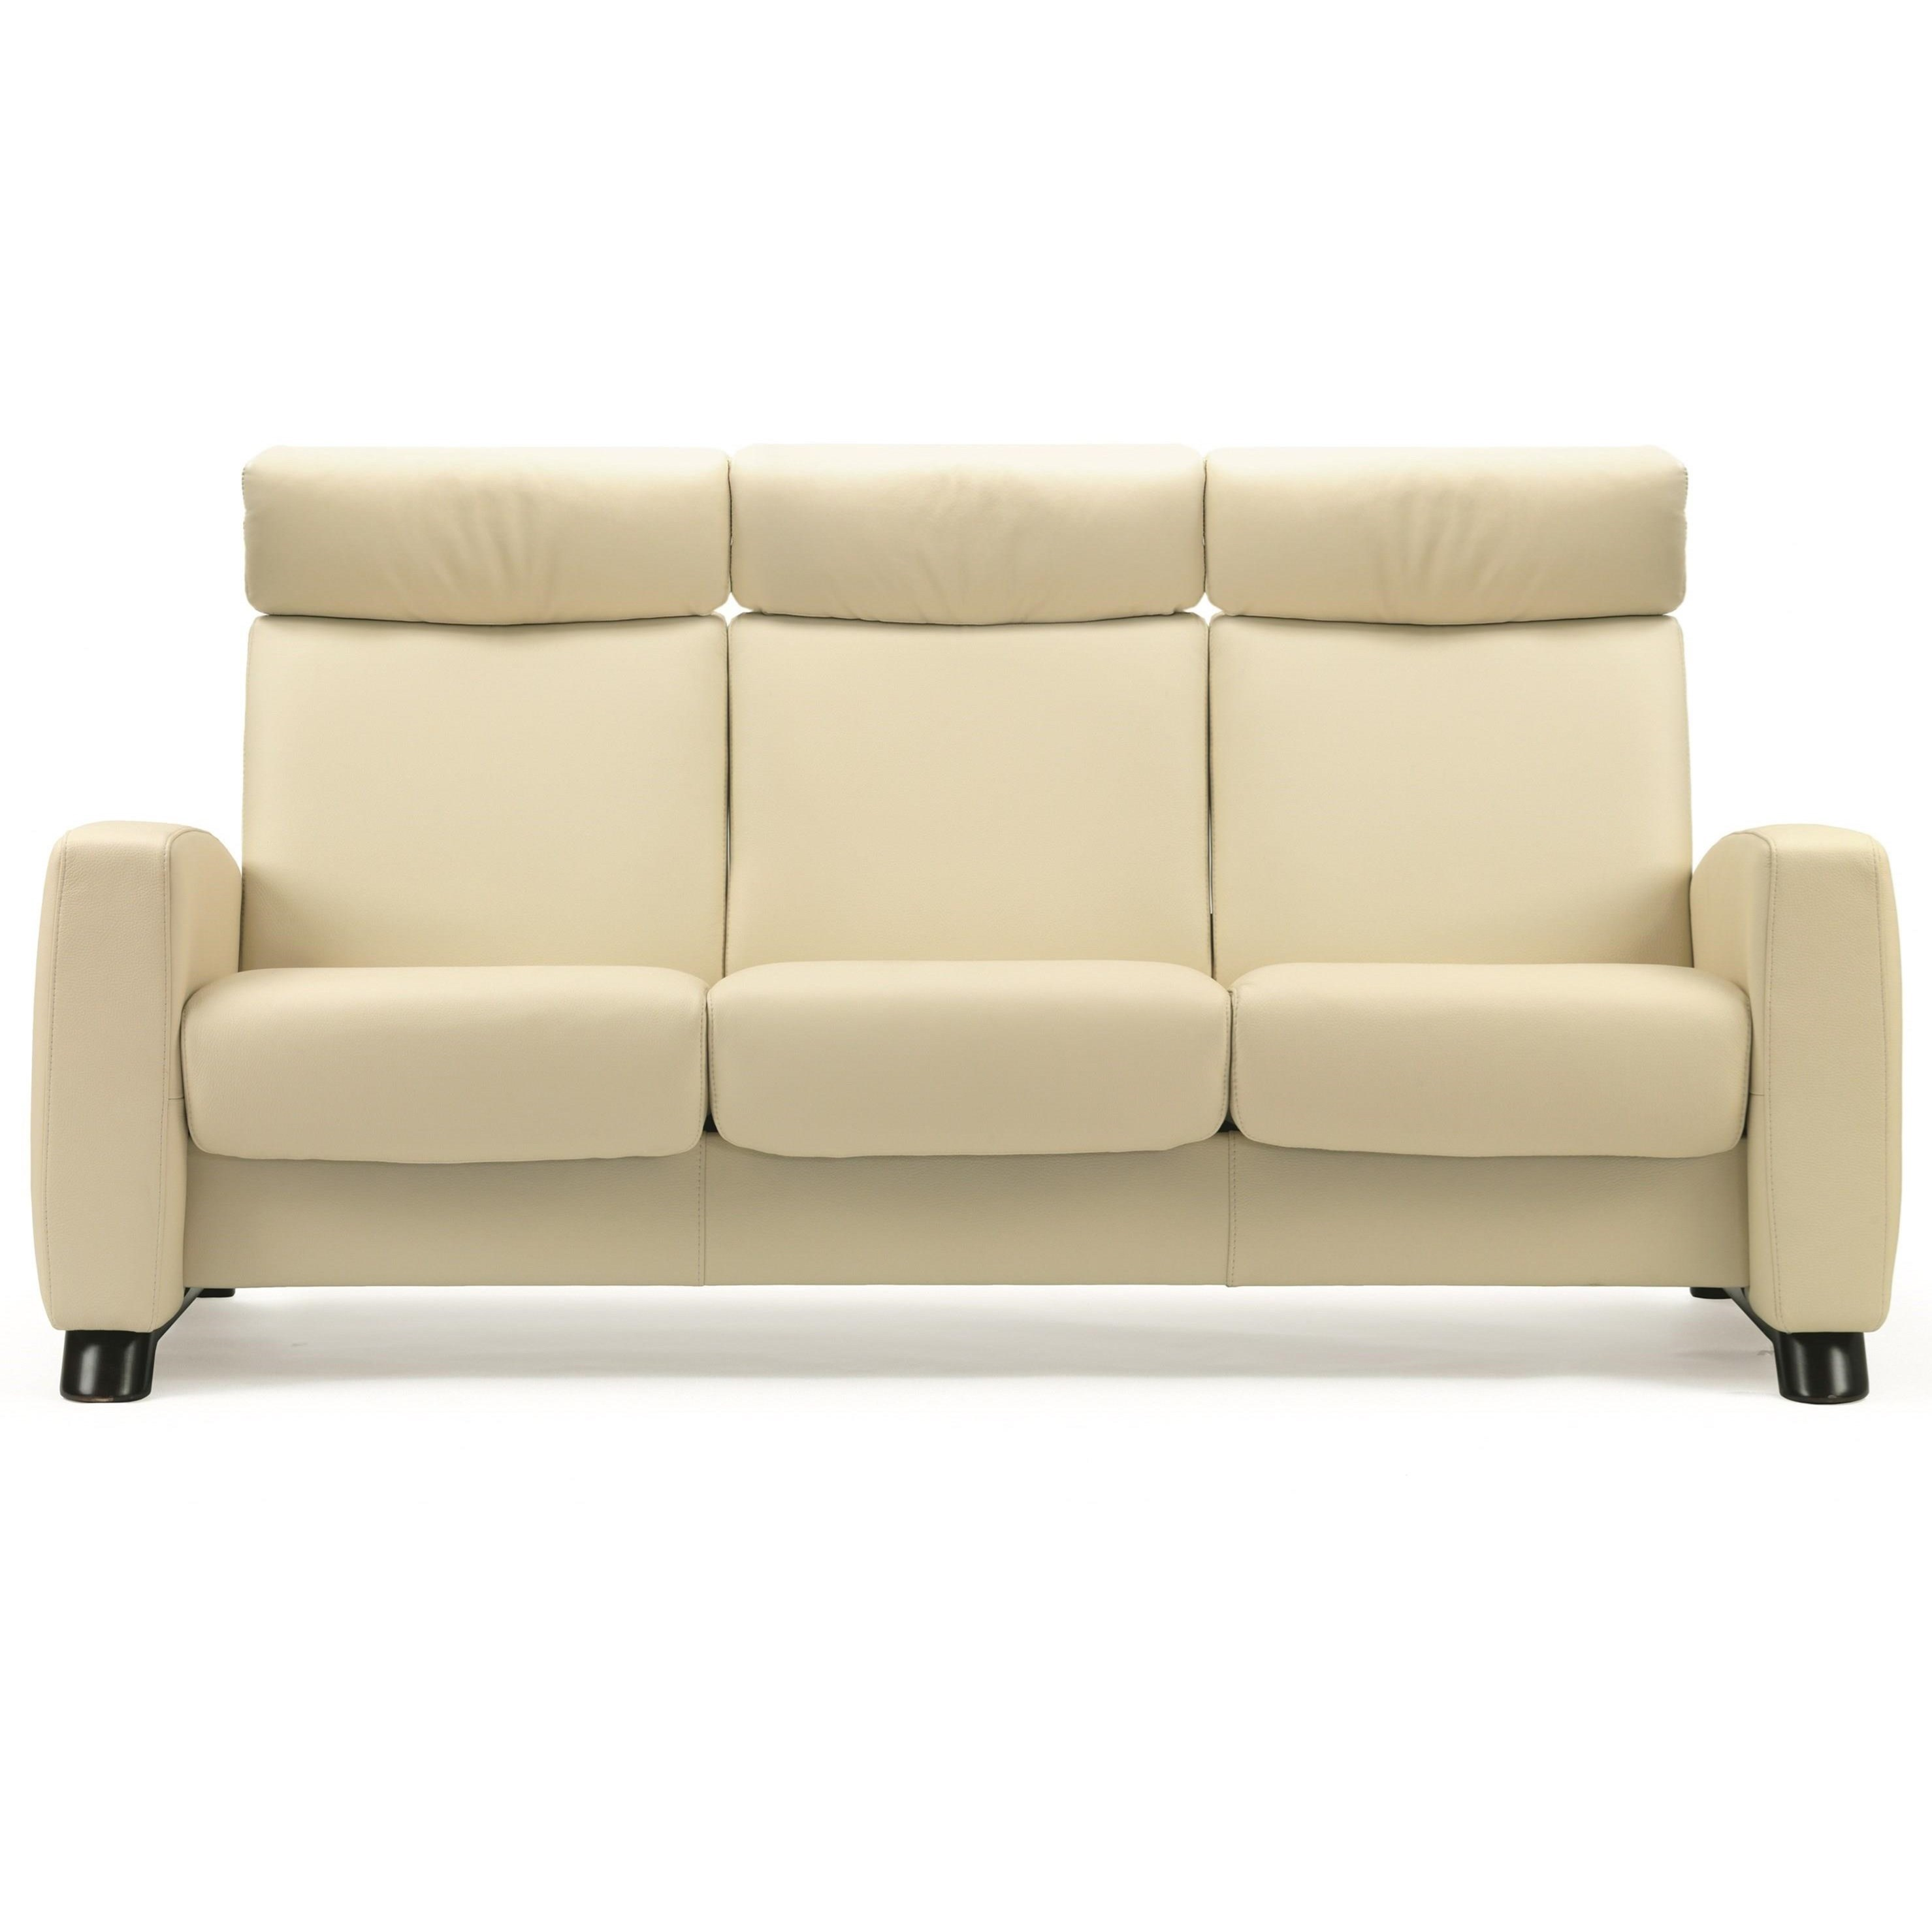 Arion 19 - A10 High-Back Reclining Sofa by Stressless at Jordan's Home Furnishings